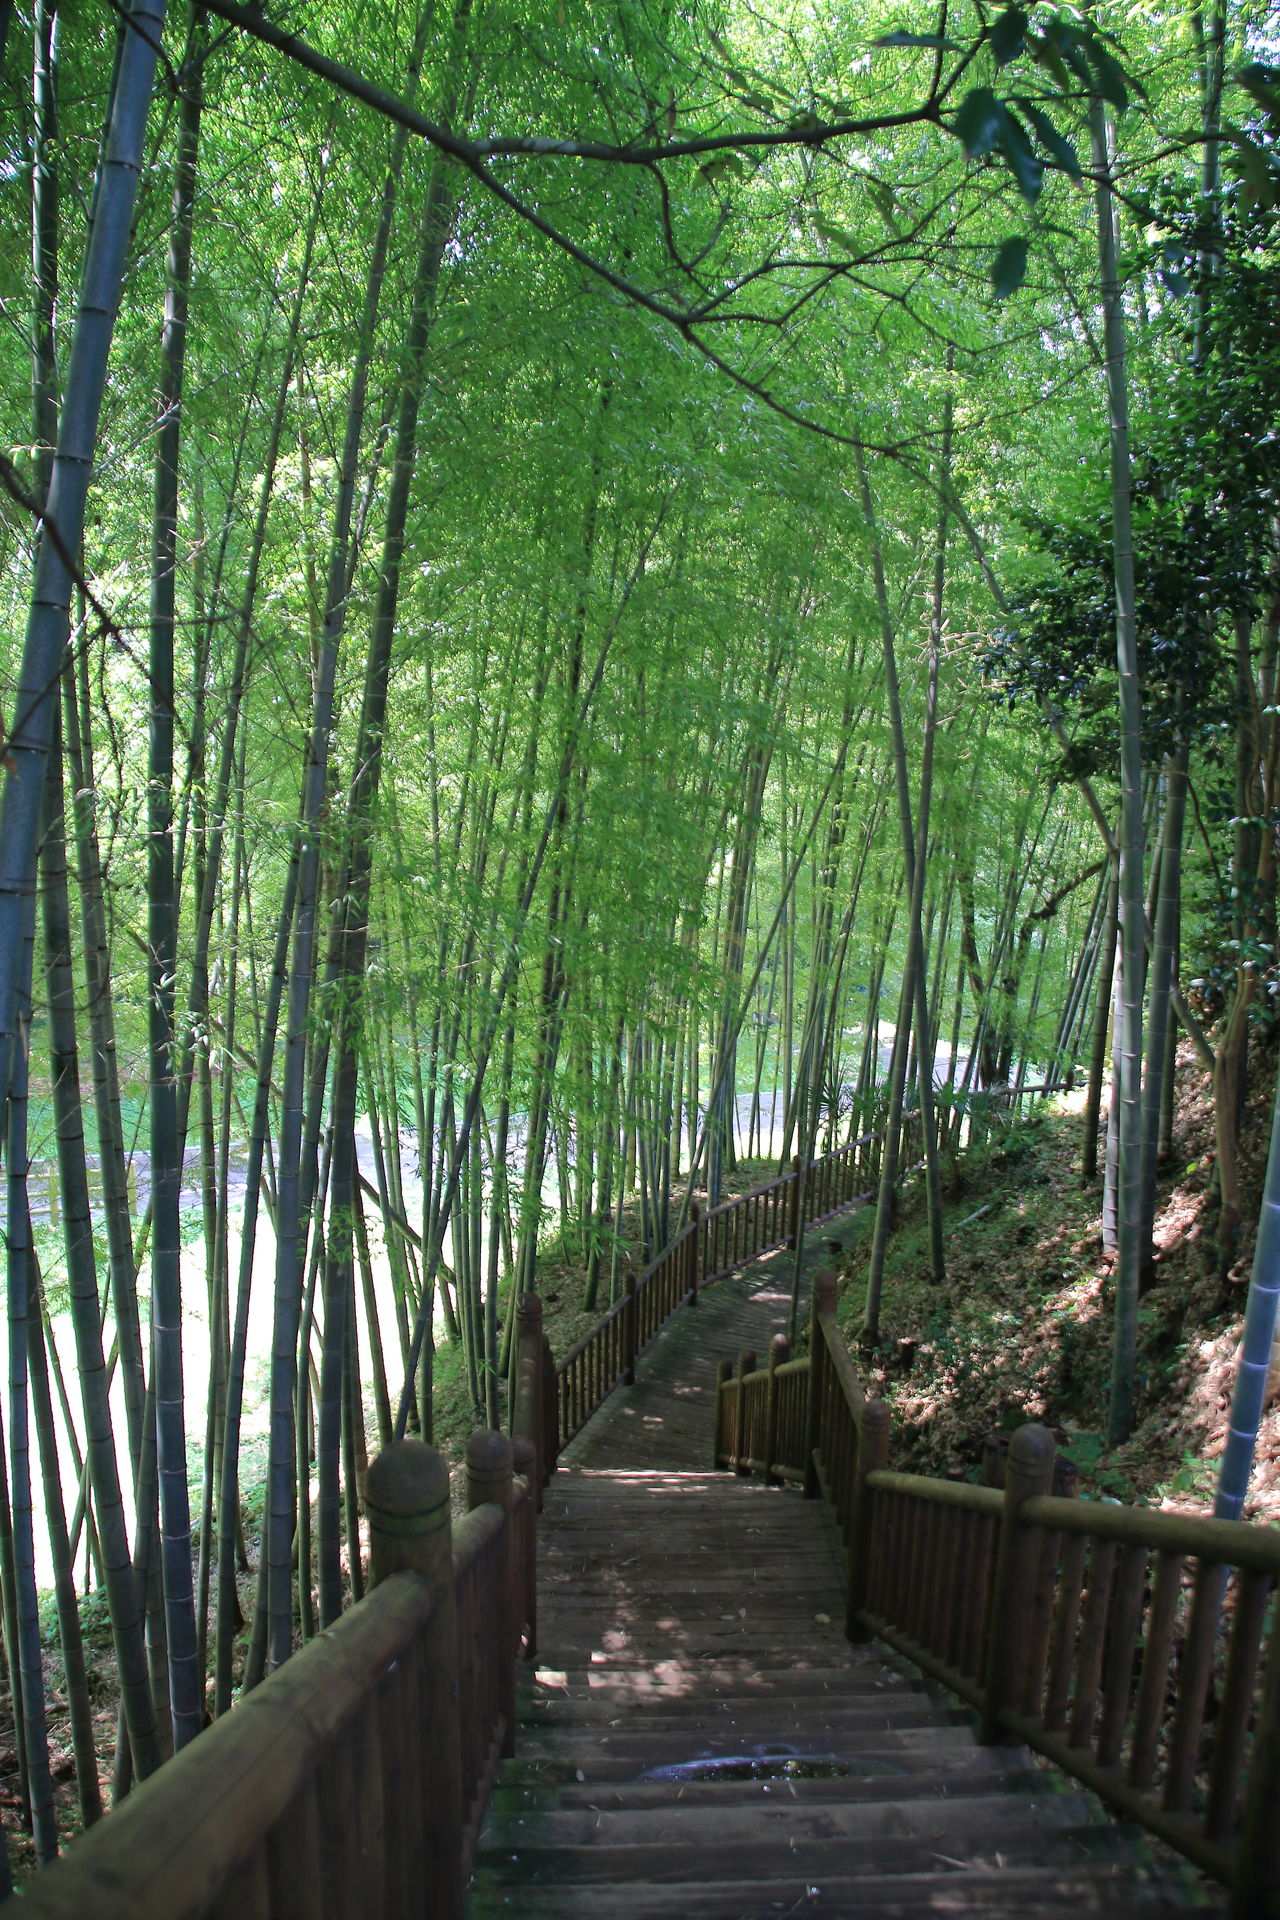 夏の竹林 鹿児島県湧水町 Bamboo Forest From My Point Of View Catch The Moment Landscape Outdoors Beauty In Nature My Fevorite Place